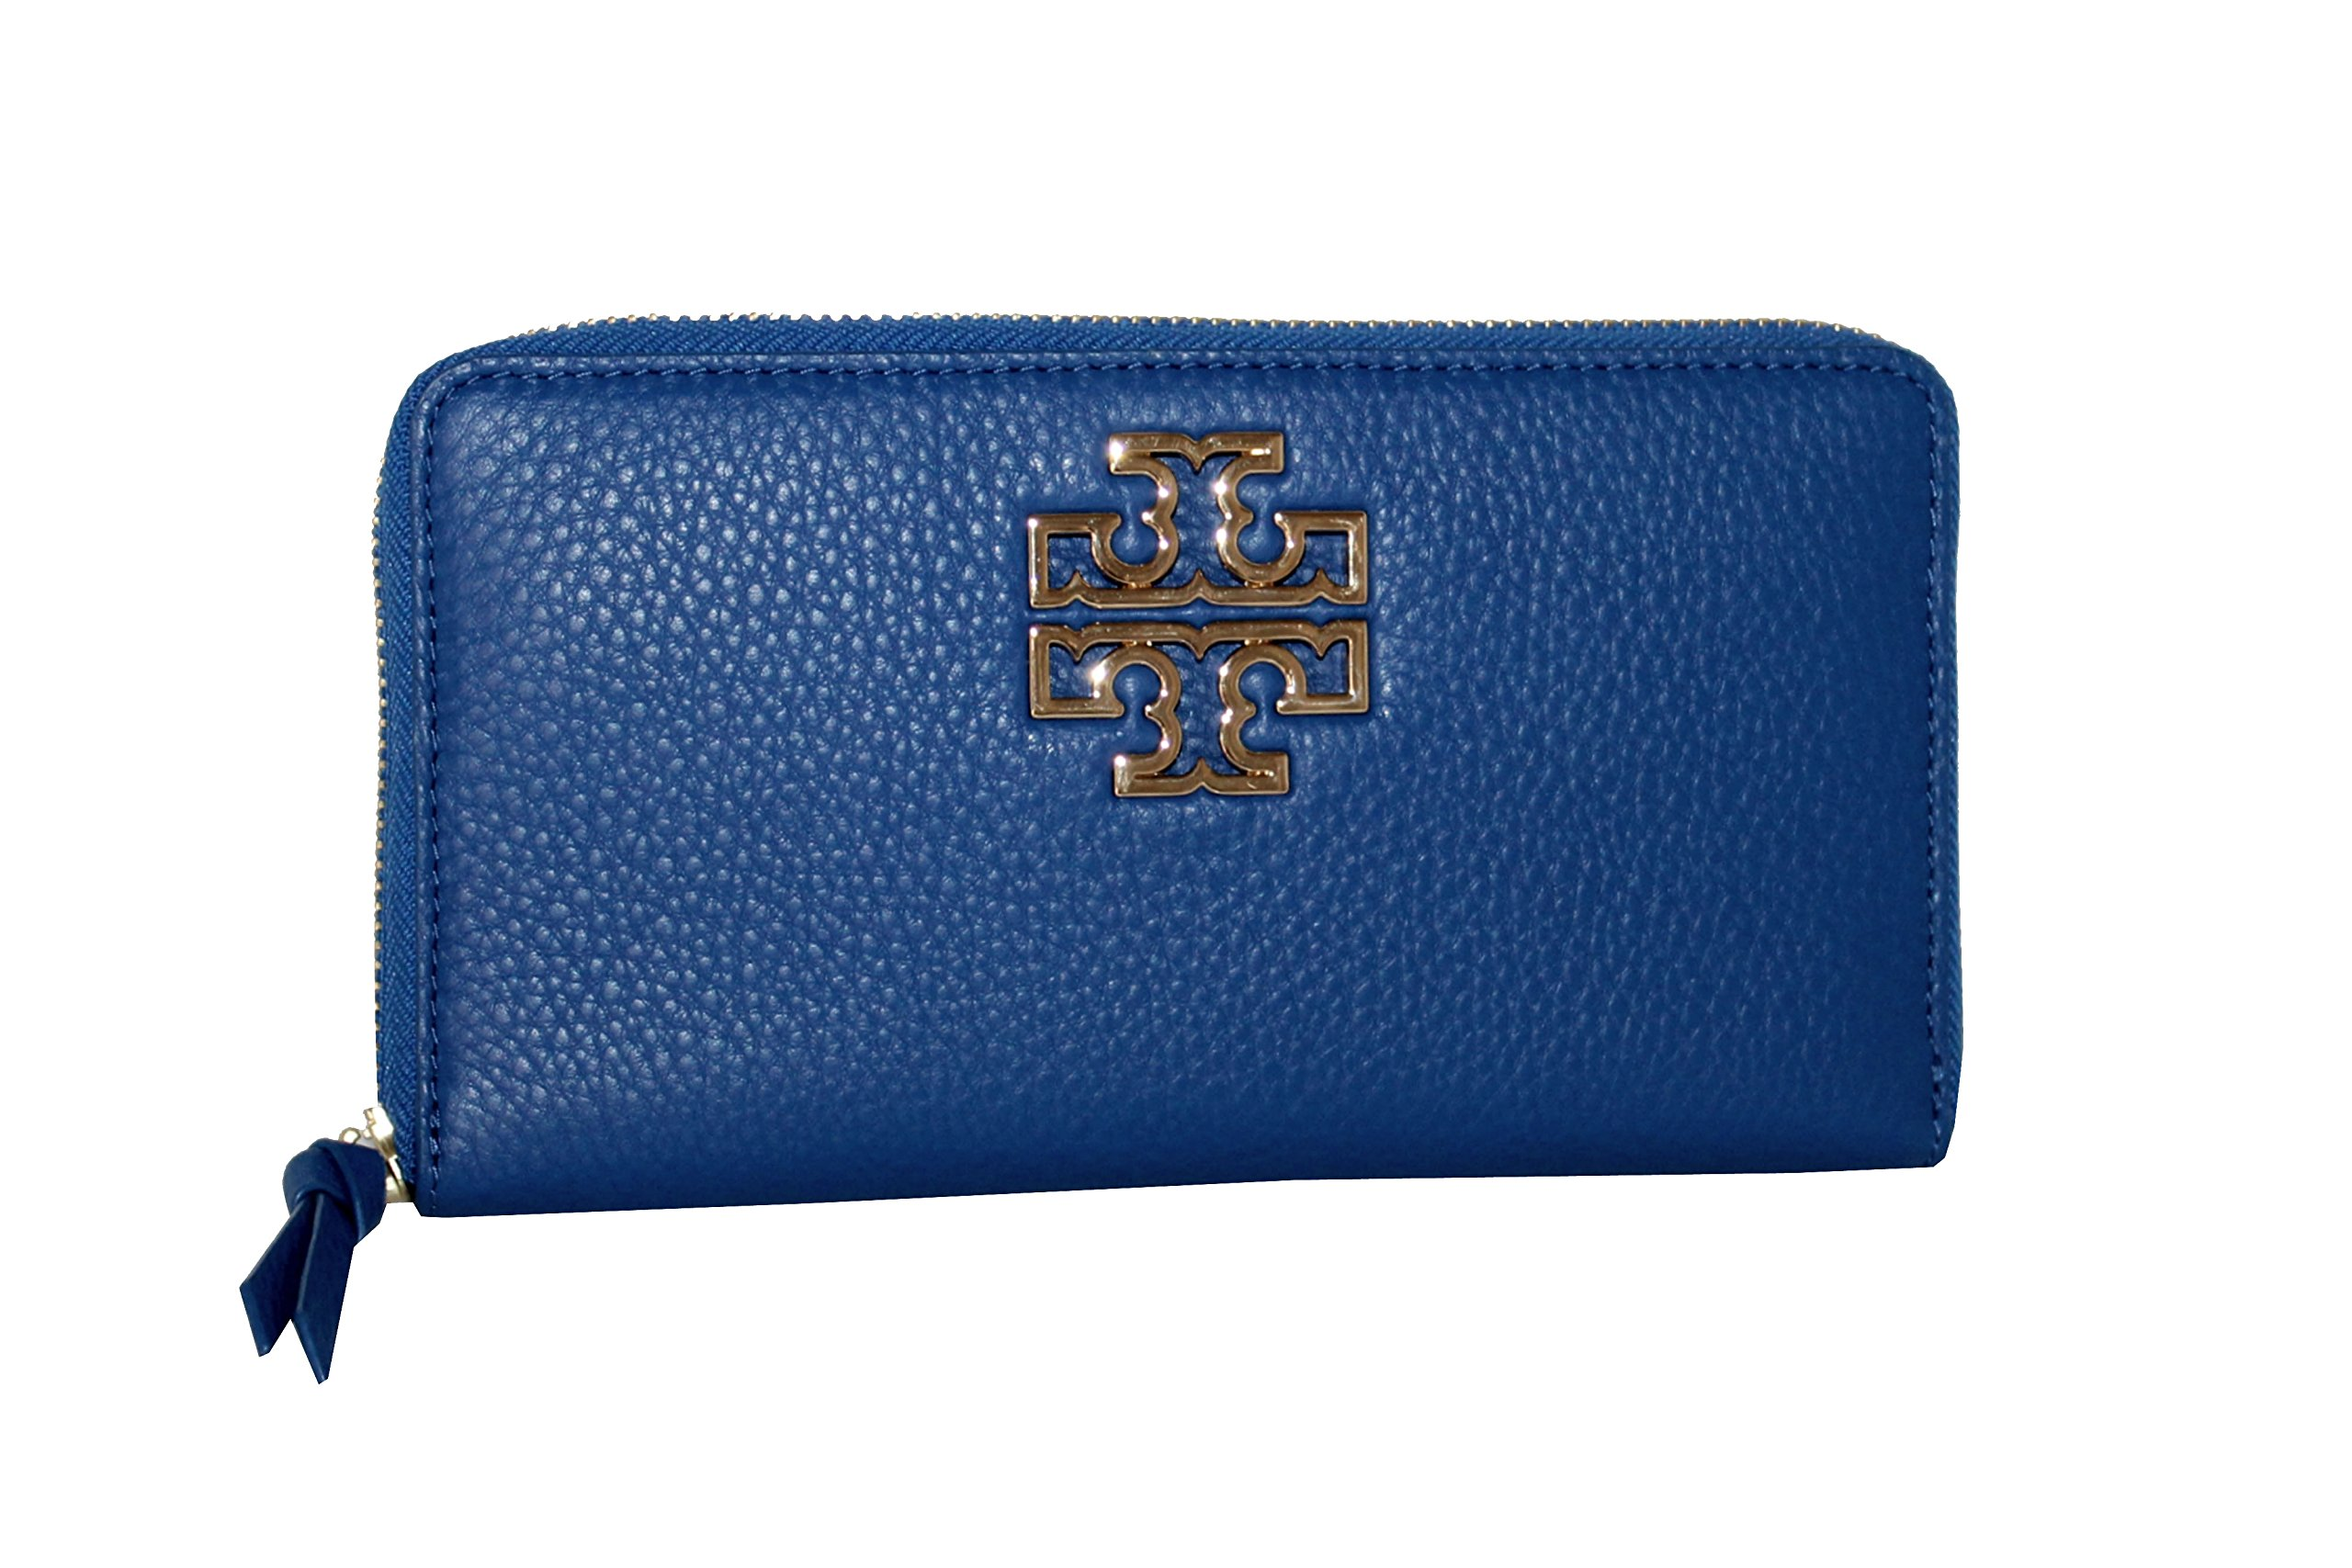 Tory Burch Britten Pebbled Leather Zip Around Continental Wallet